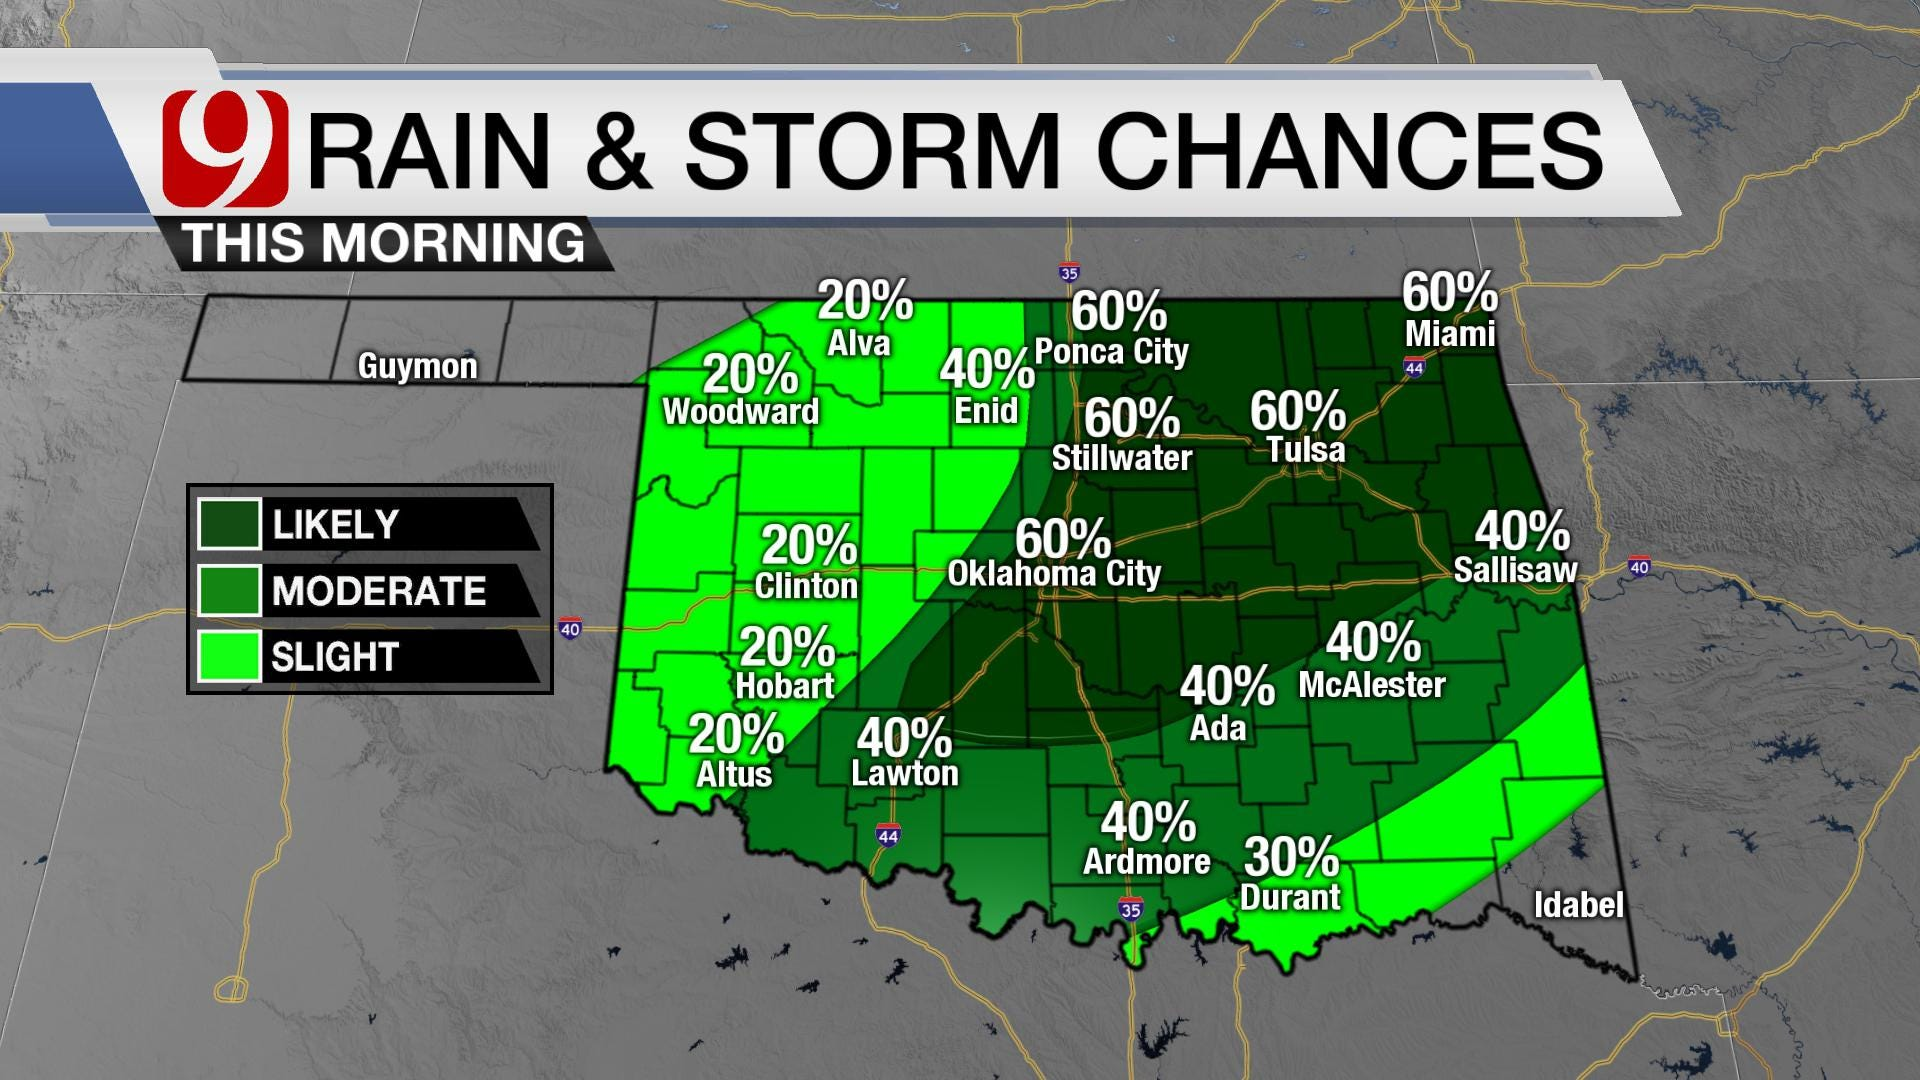 Big Changes For July Ahead With Cooler Temps Thursday, Friday